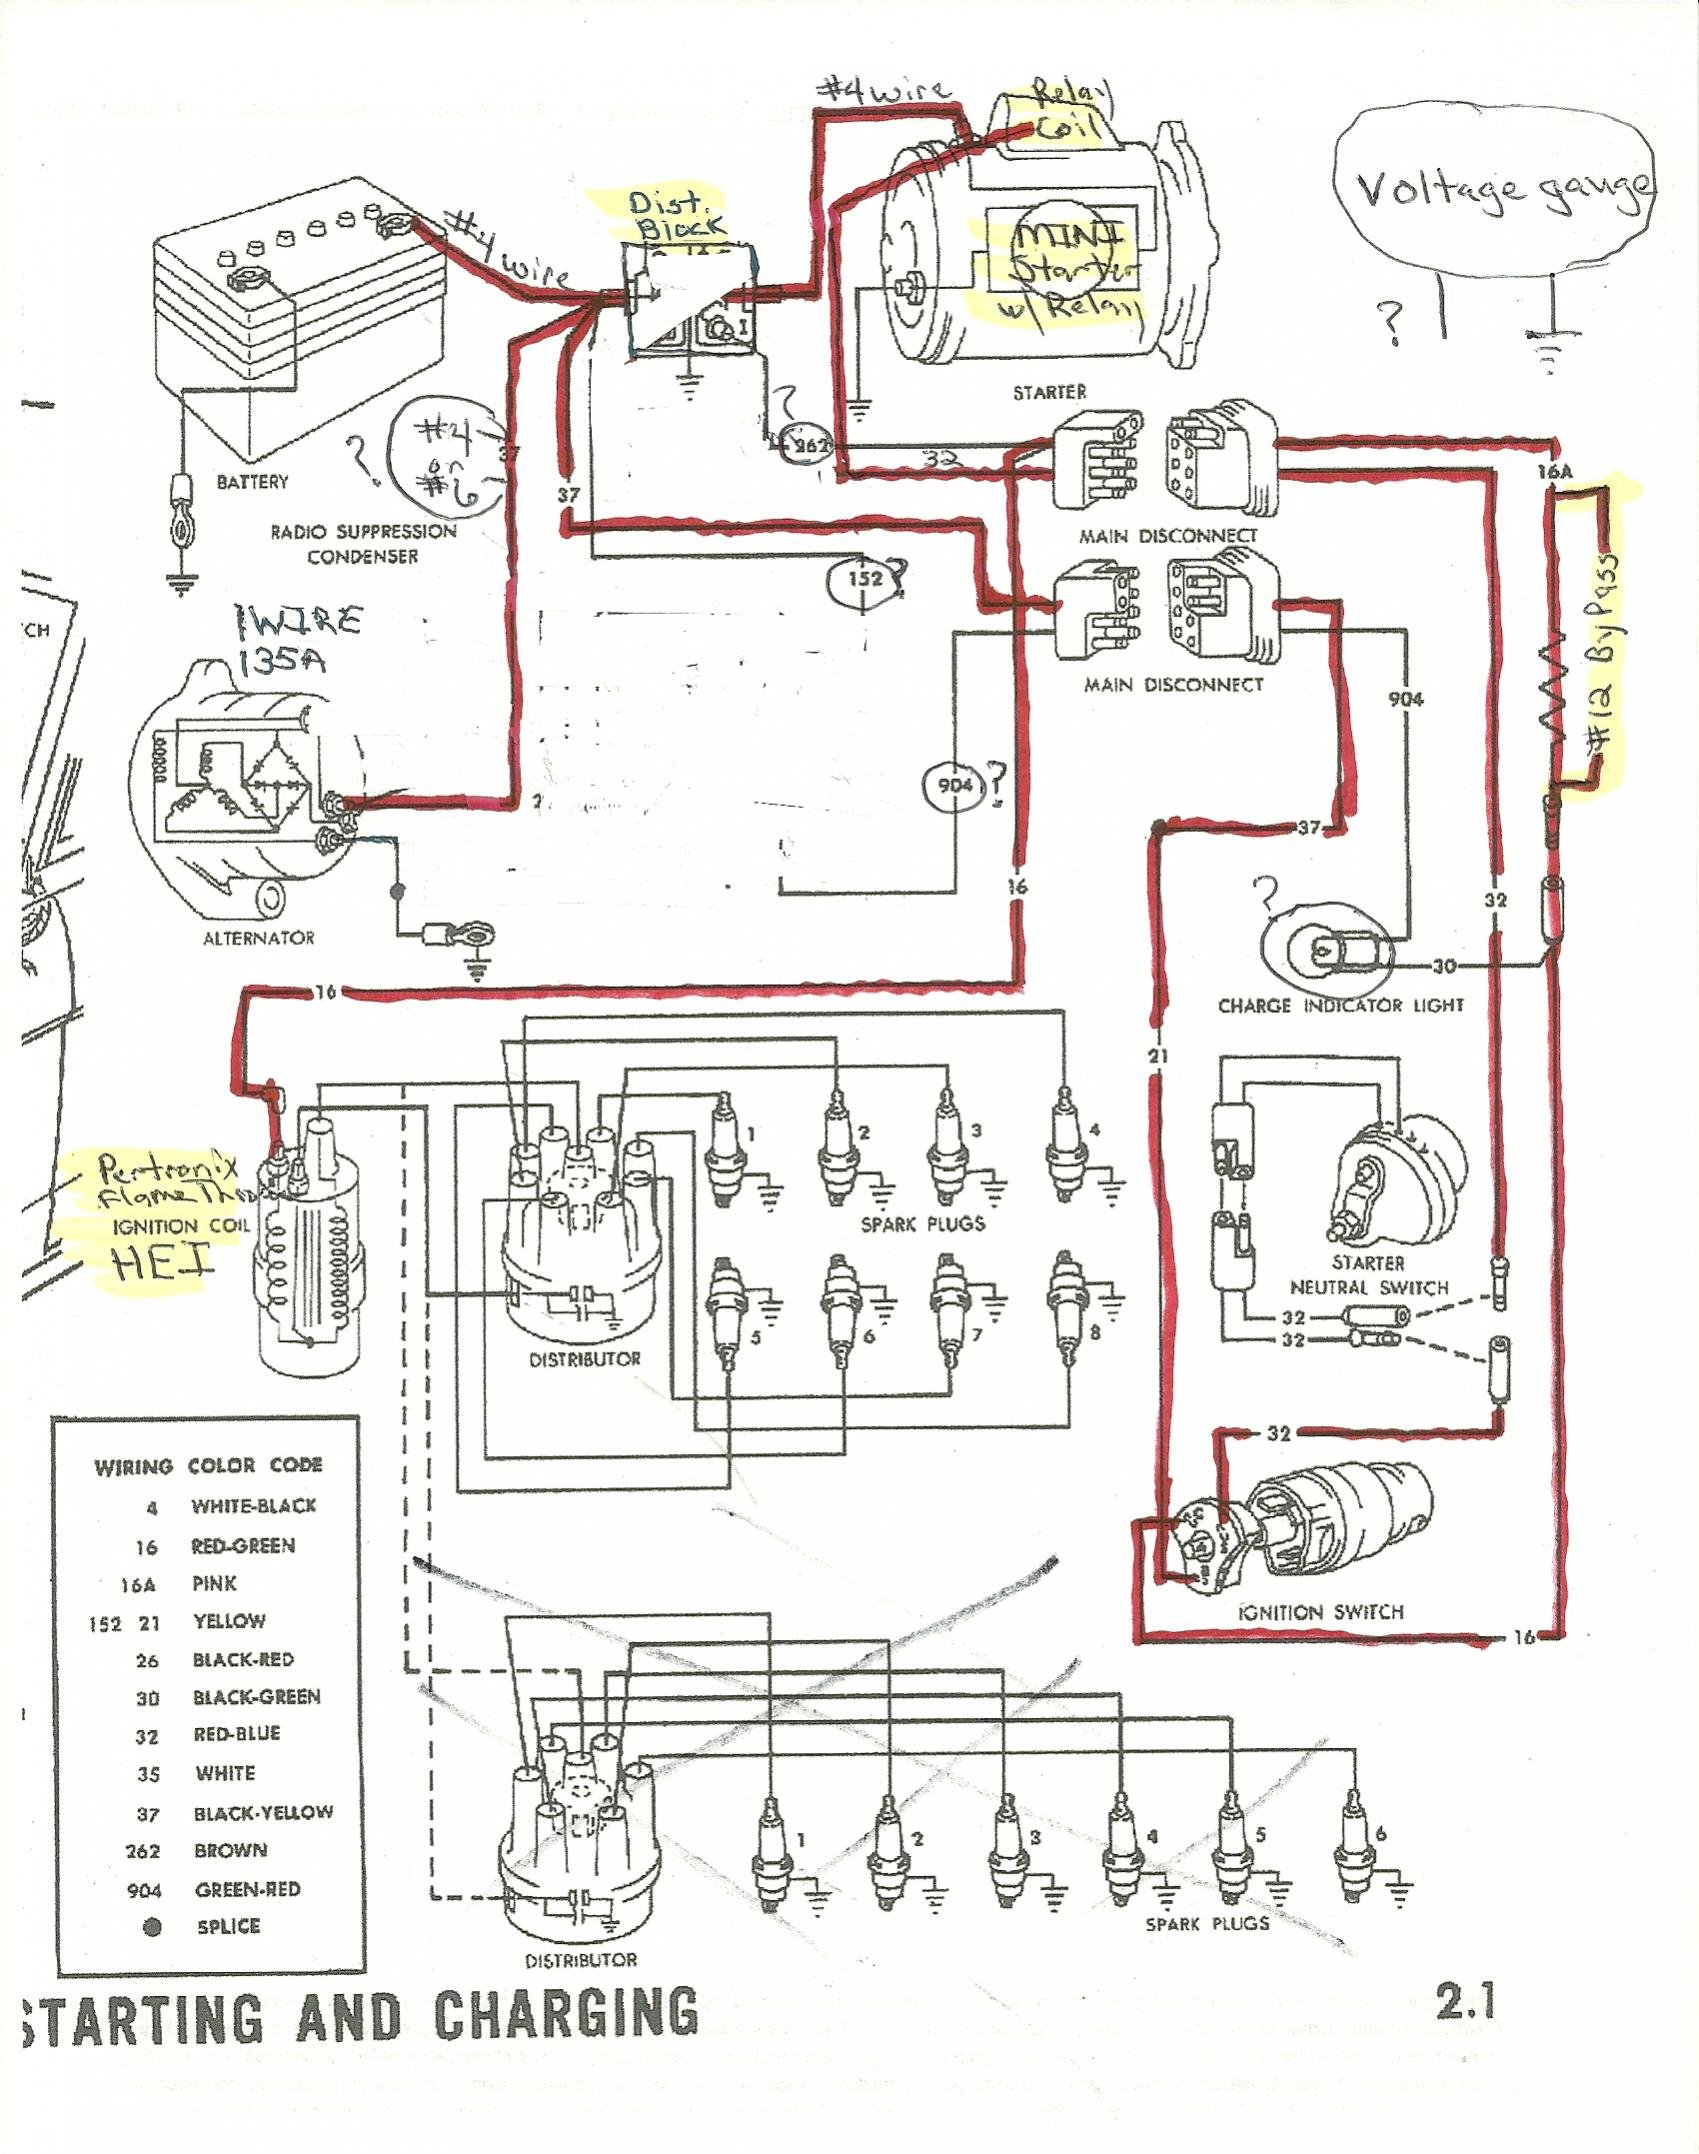 1981 Chevy Alternator Wiring Diagram | Online Wiring Diagram on 2005 mustang wiring diagram, 1964 mustang wiring diagram, 1967 charger wiring diagram, 1968 mustang wiring diagram, 1973 charger wiring diagram, 2002 mustang wiring diagram, 2007 mustang wiring diagram, 1999 mustang wiring diagram, 1967 mustang wiring diagram, 1981 mustang brochure, 1977 mustang wiring diagram, 1980 mustang wiring diagram, 2003 mustang wiring diagram, 1975 ford mustang ii wiring diagram, 1965 mustang wiring diagram, 1970 mustang wiring diagram, 1973 mustang mach 1 wiring diagram, 1966 mustang wiring diagram, 1993 mustang wiring diagram, 1998 mustang wiring diagram,